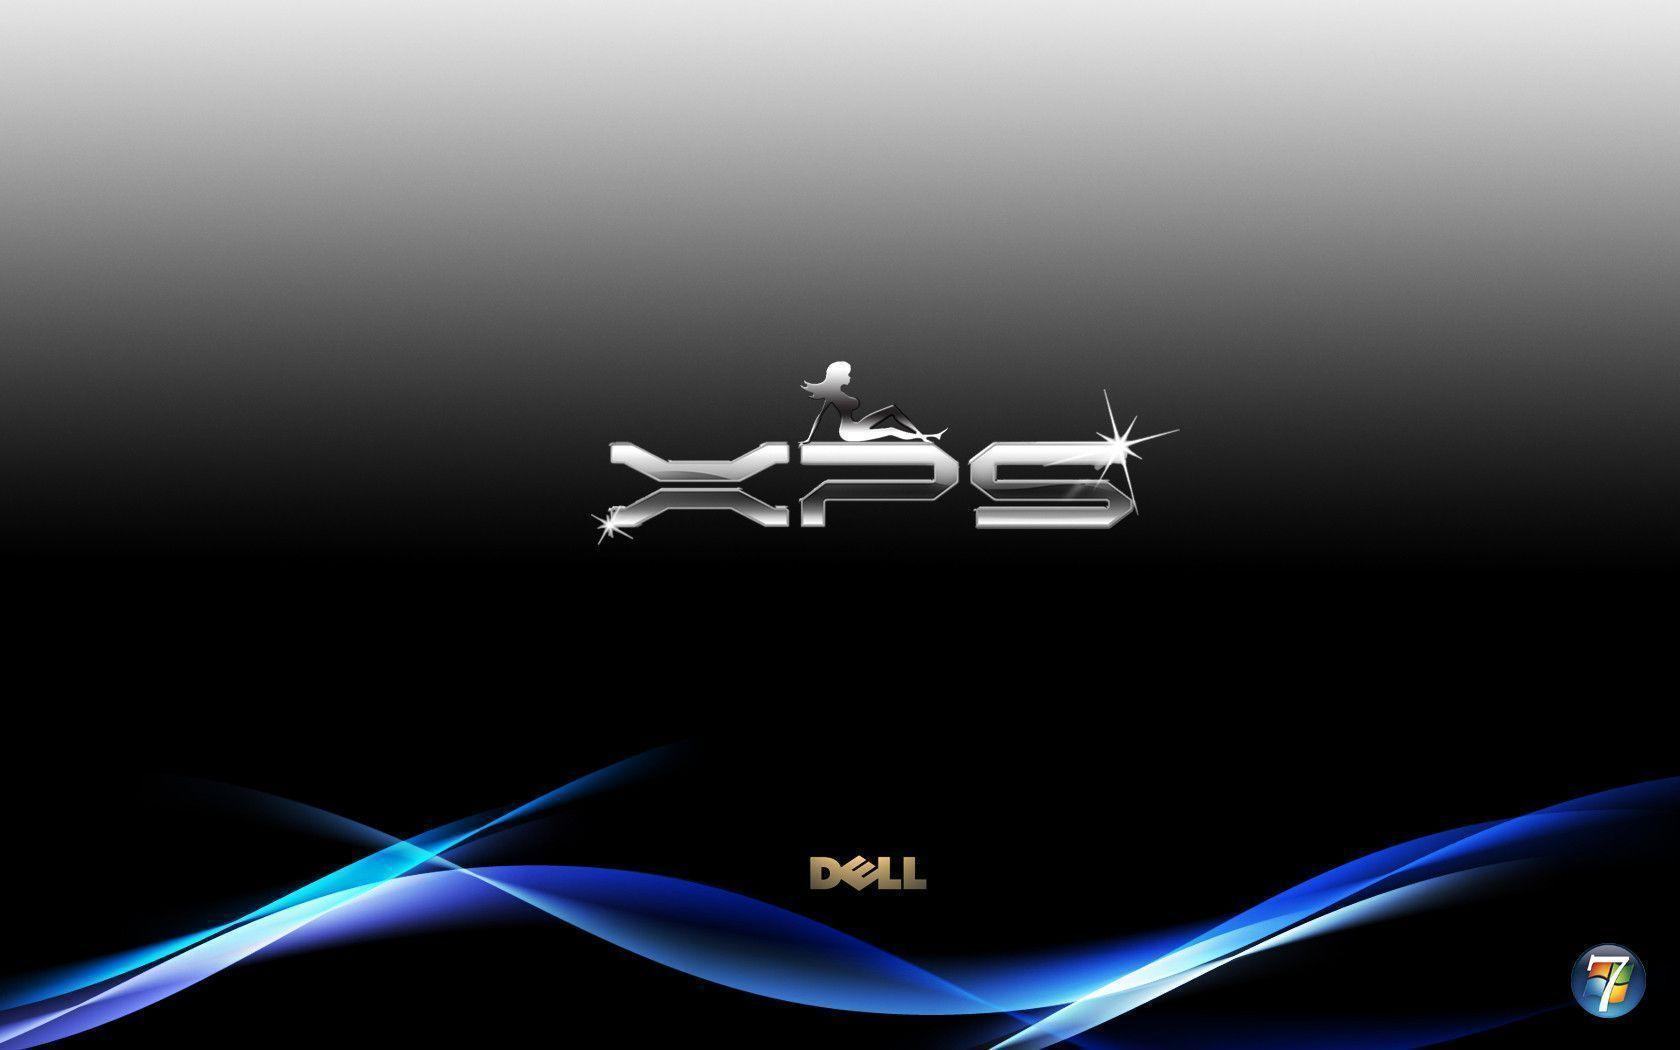 Dell xps wallpaper 1920x1080